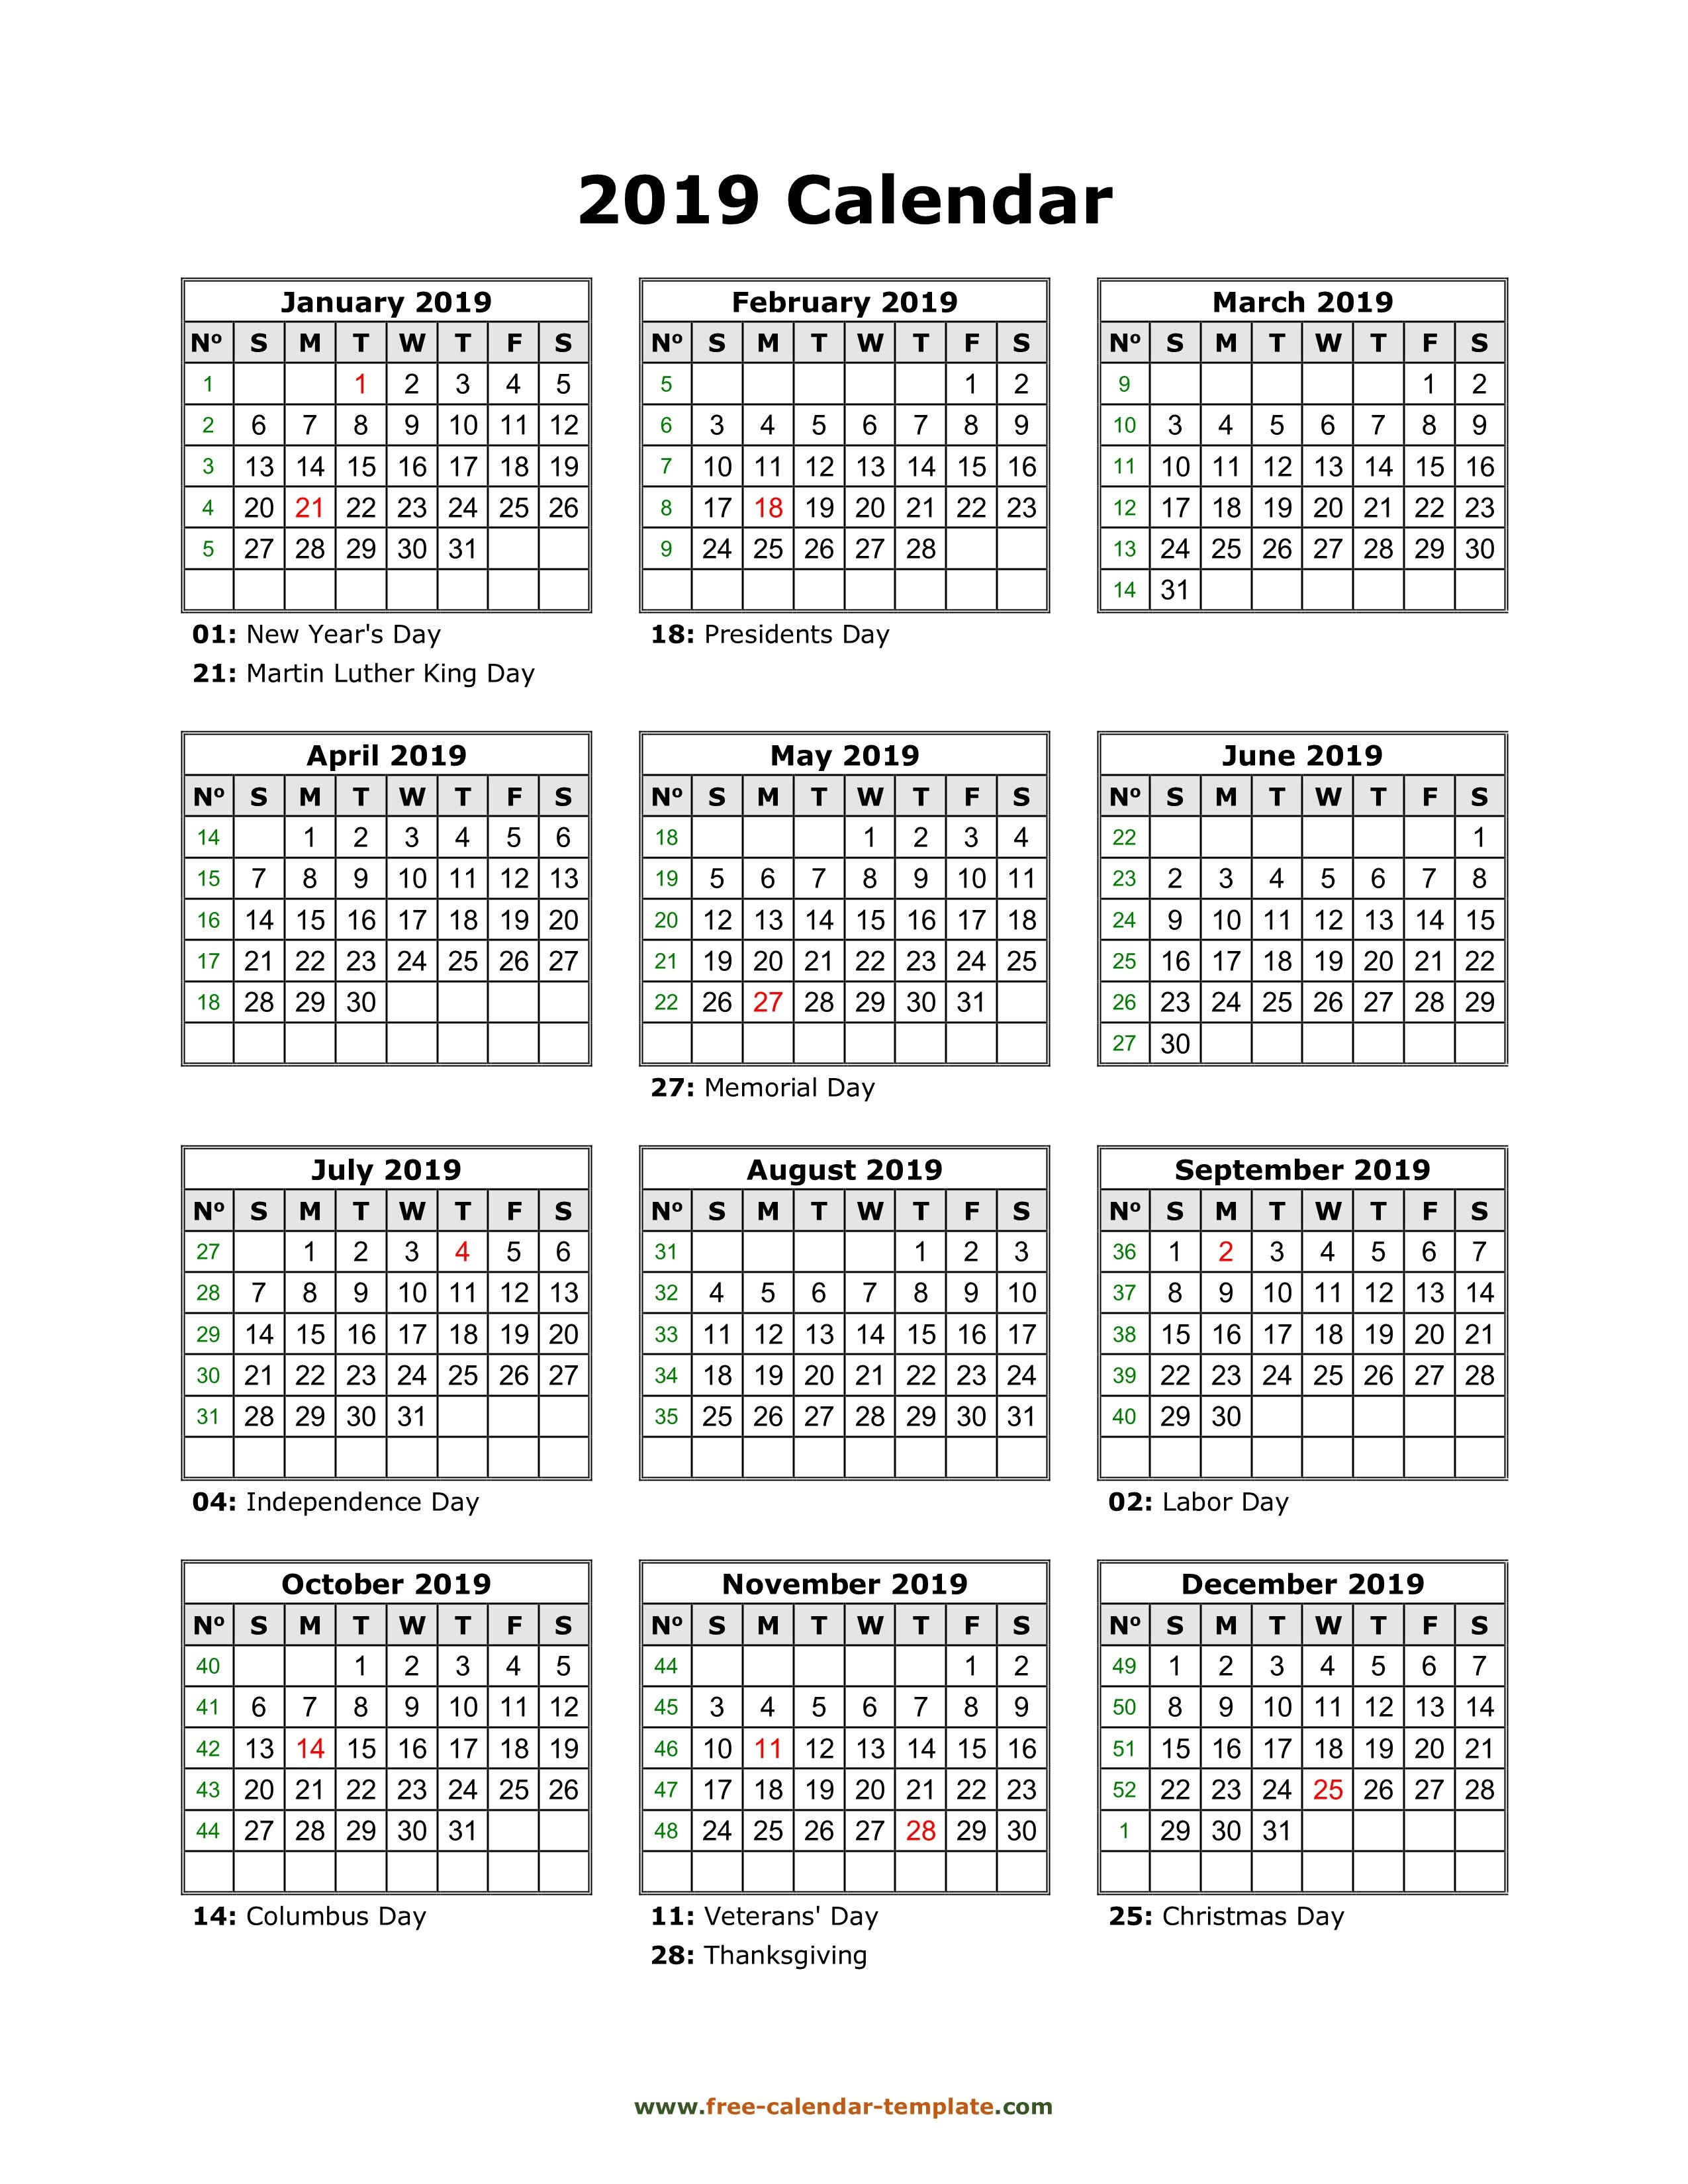 Yearly Printable Calendar 2019 With Holidays | Free-Calendar Calendar 2019 View